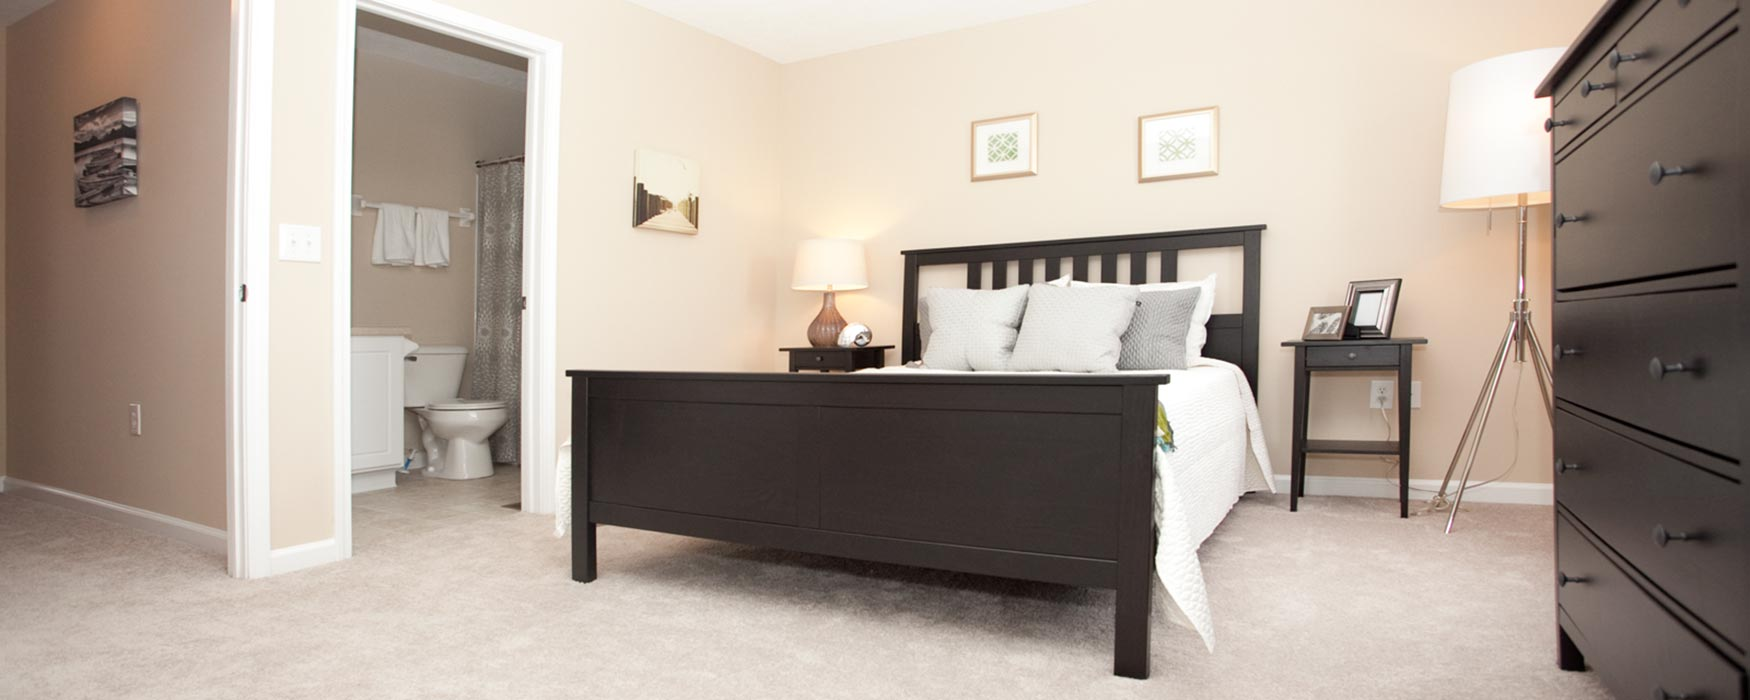 LC Preserve Crossing | Gahanna Apartments | Stansbury Town Bedroom